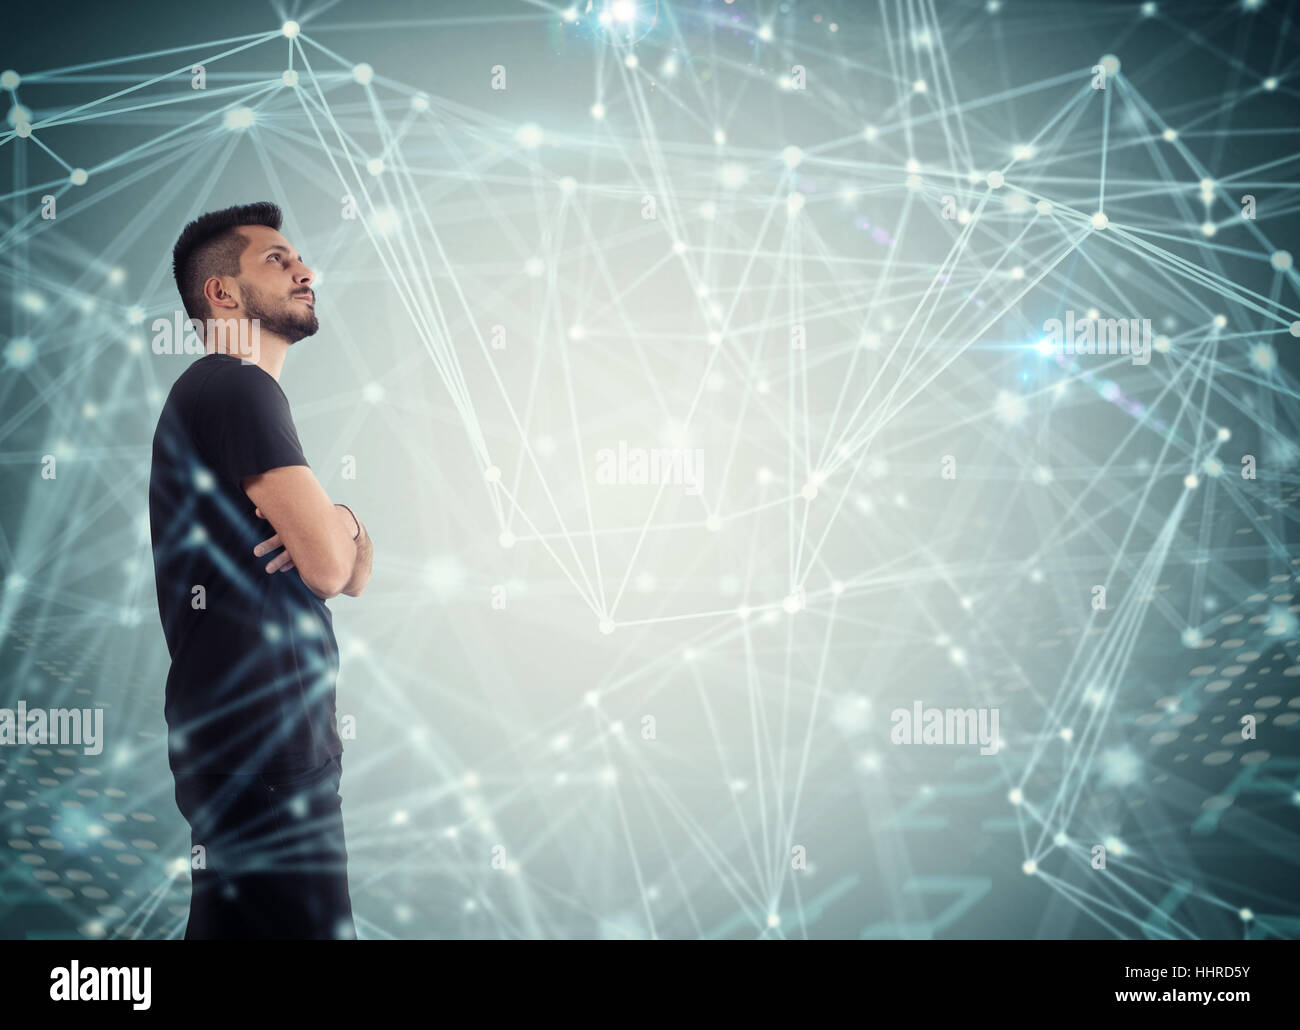 System of interconnection of network - Stock Image